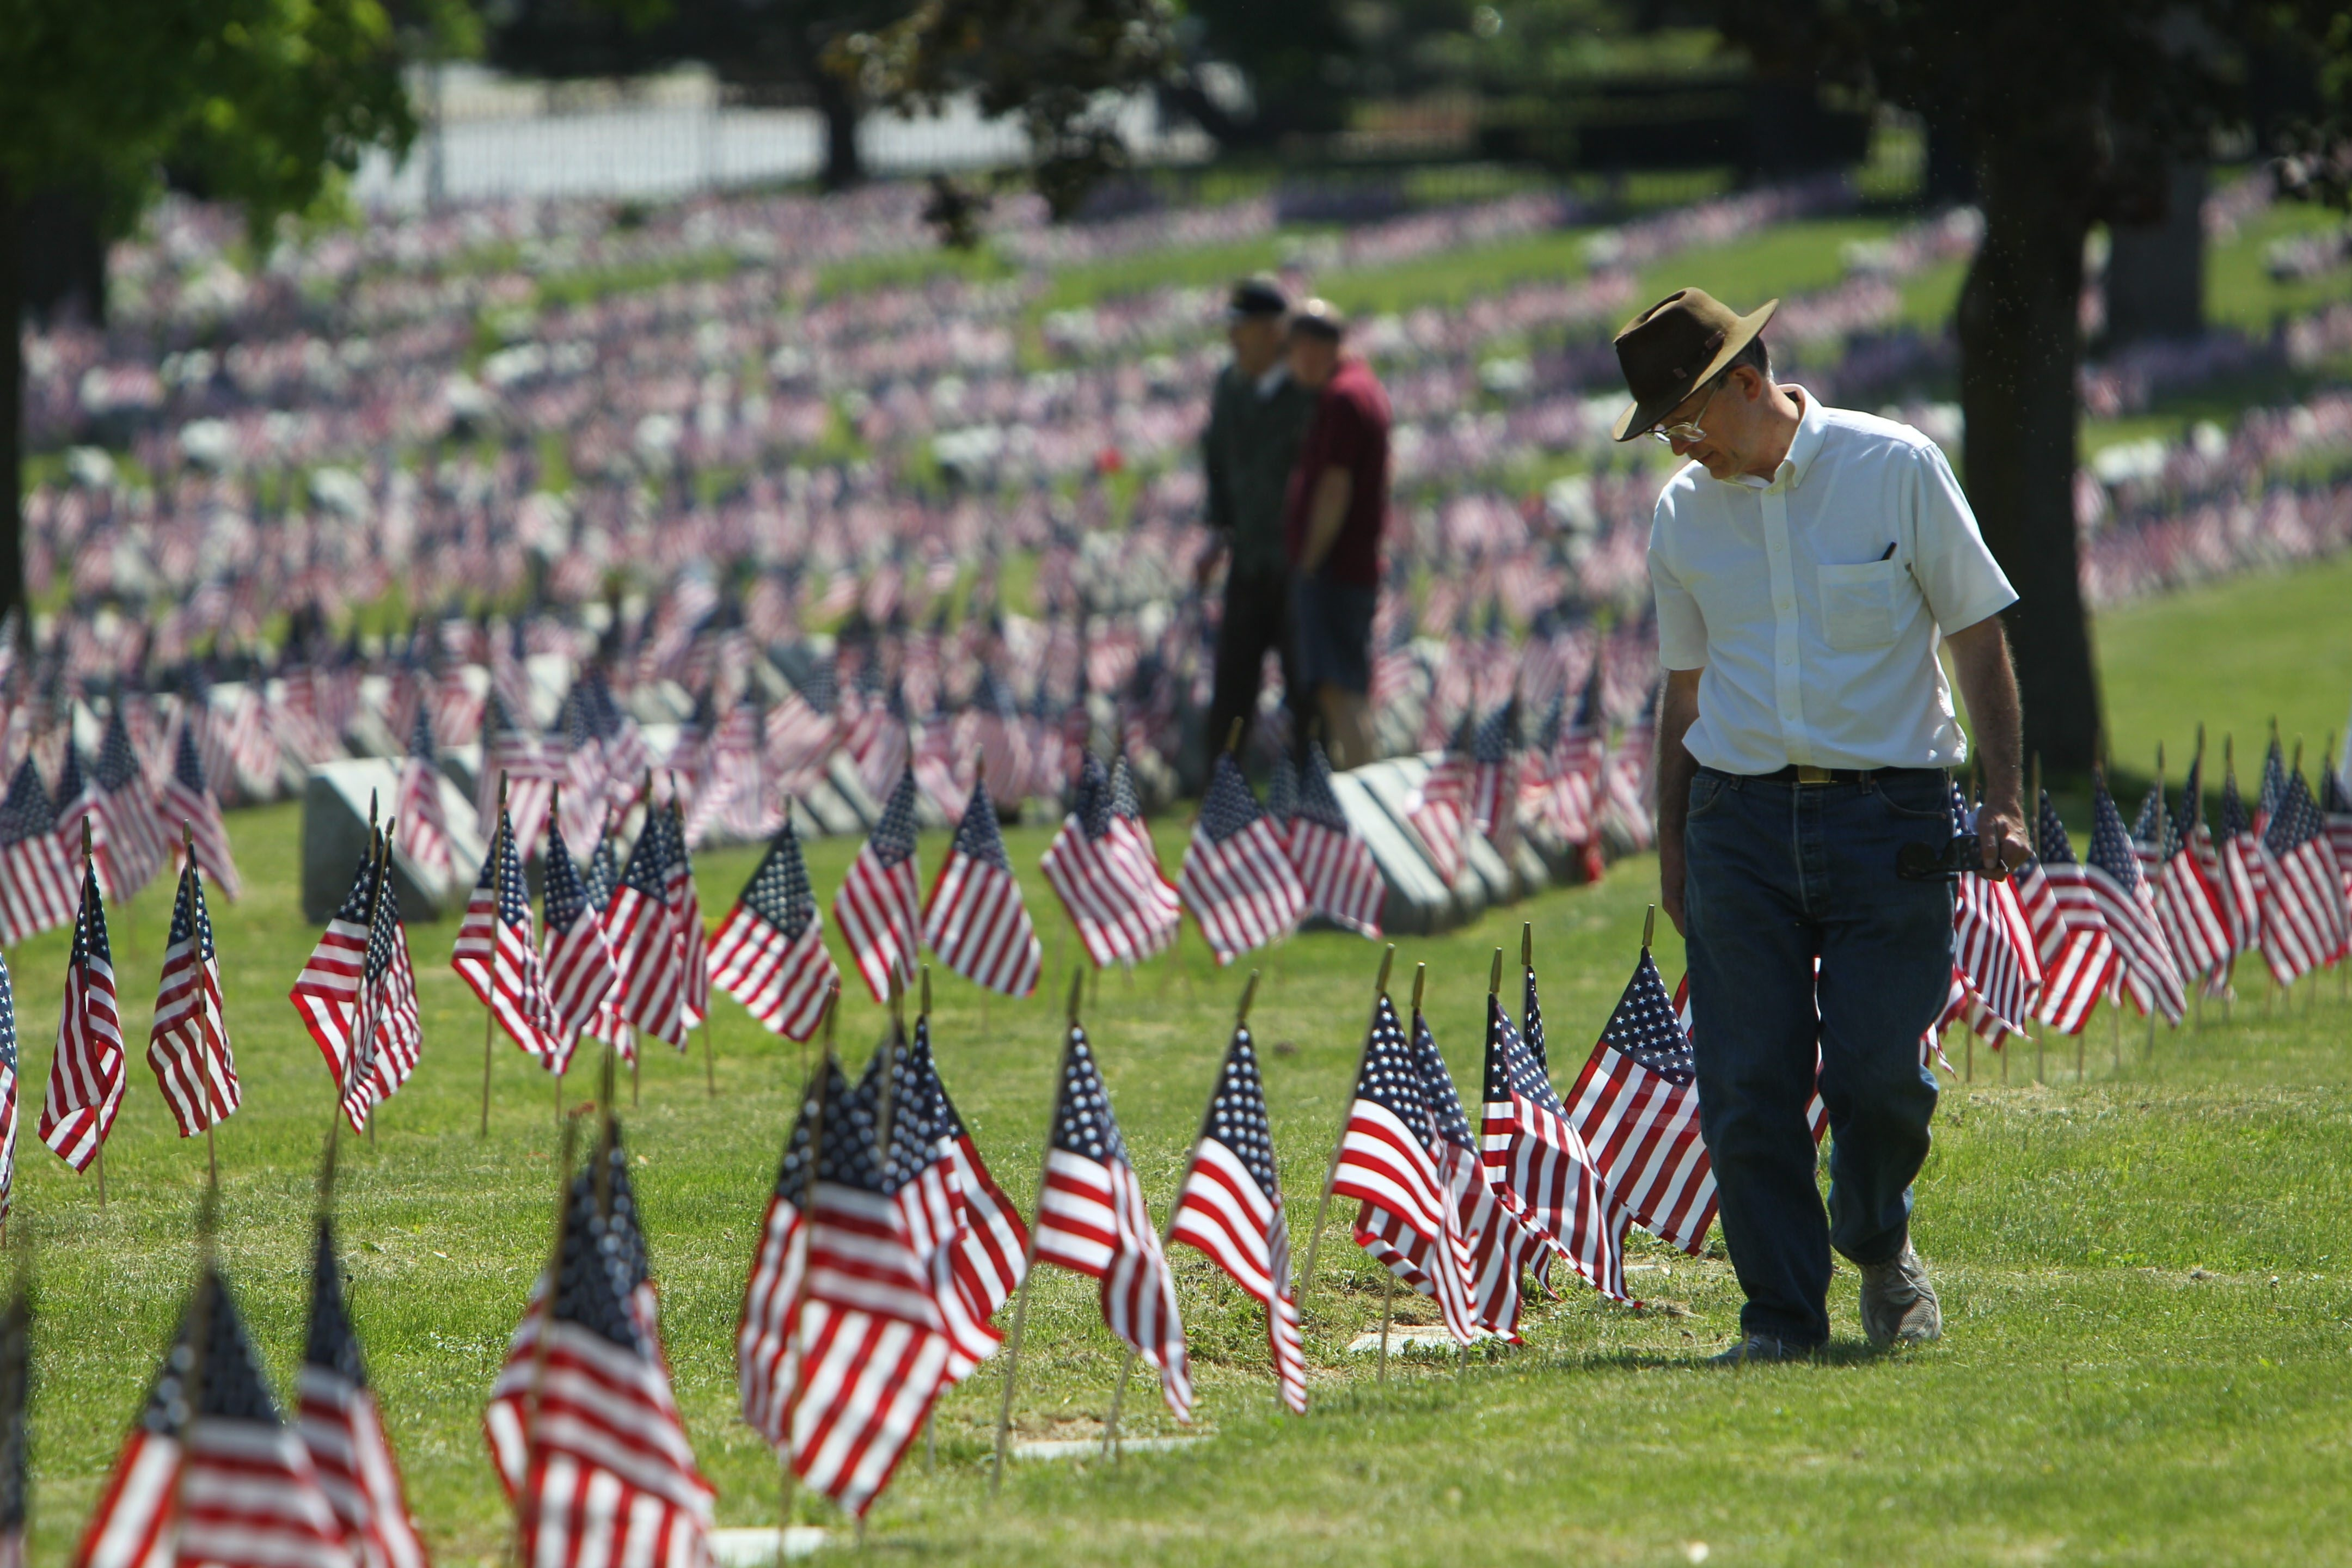 At Forest Lawn's Veterans Field, Daniel Bartoz, of Appleton, looks for the grave of his uncle, Rudalf Bartosz, who served in World War II.